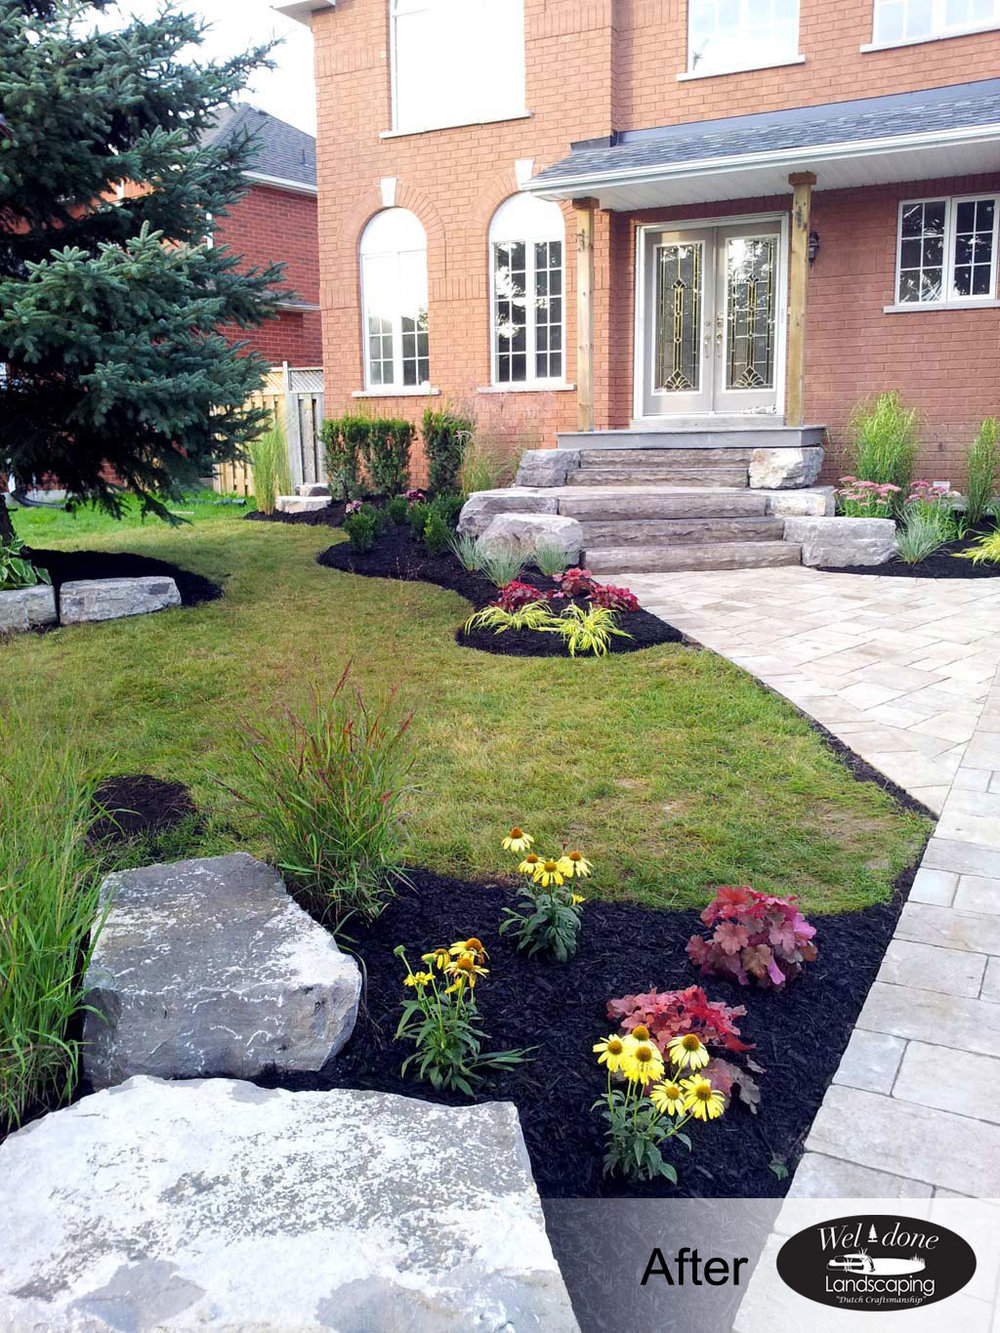 wel-done-landscaping-before-after-004.jpg